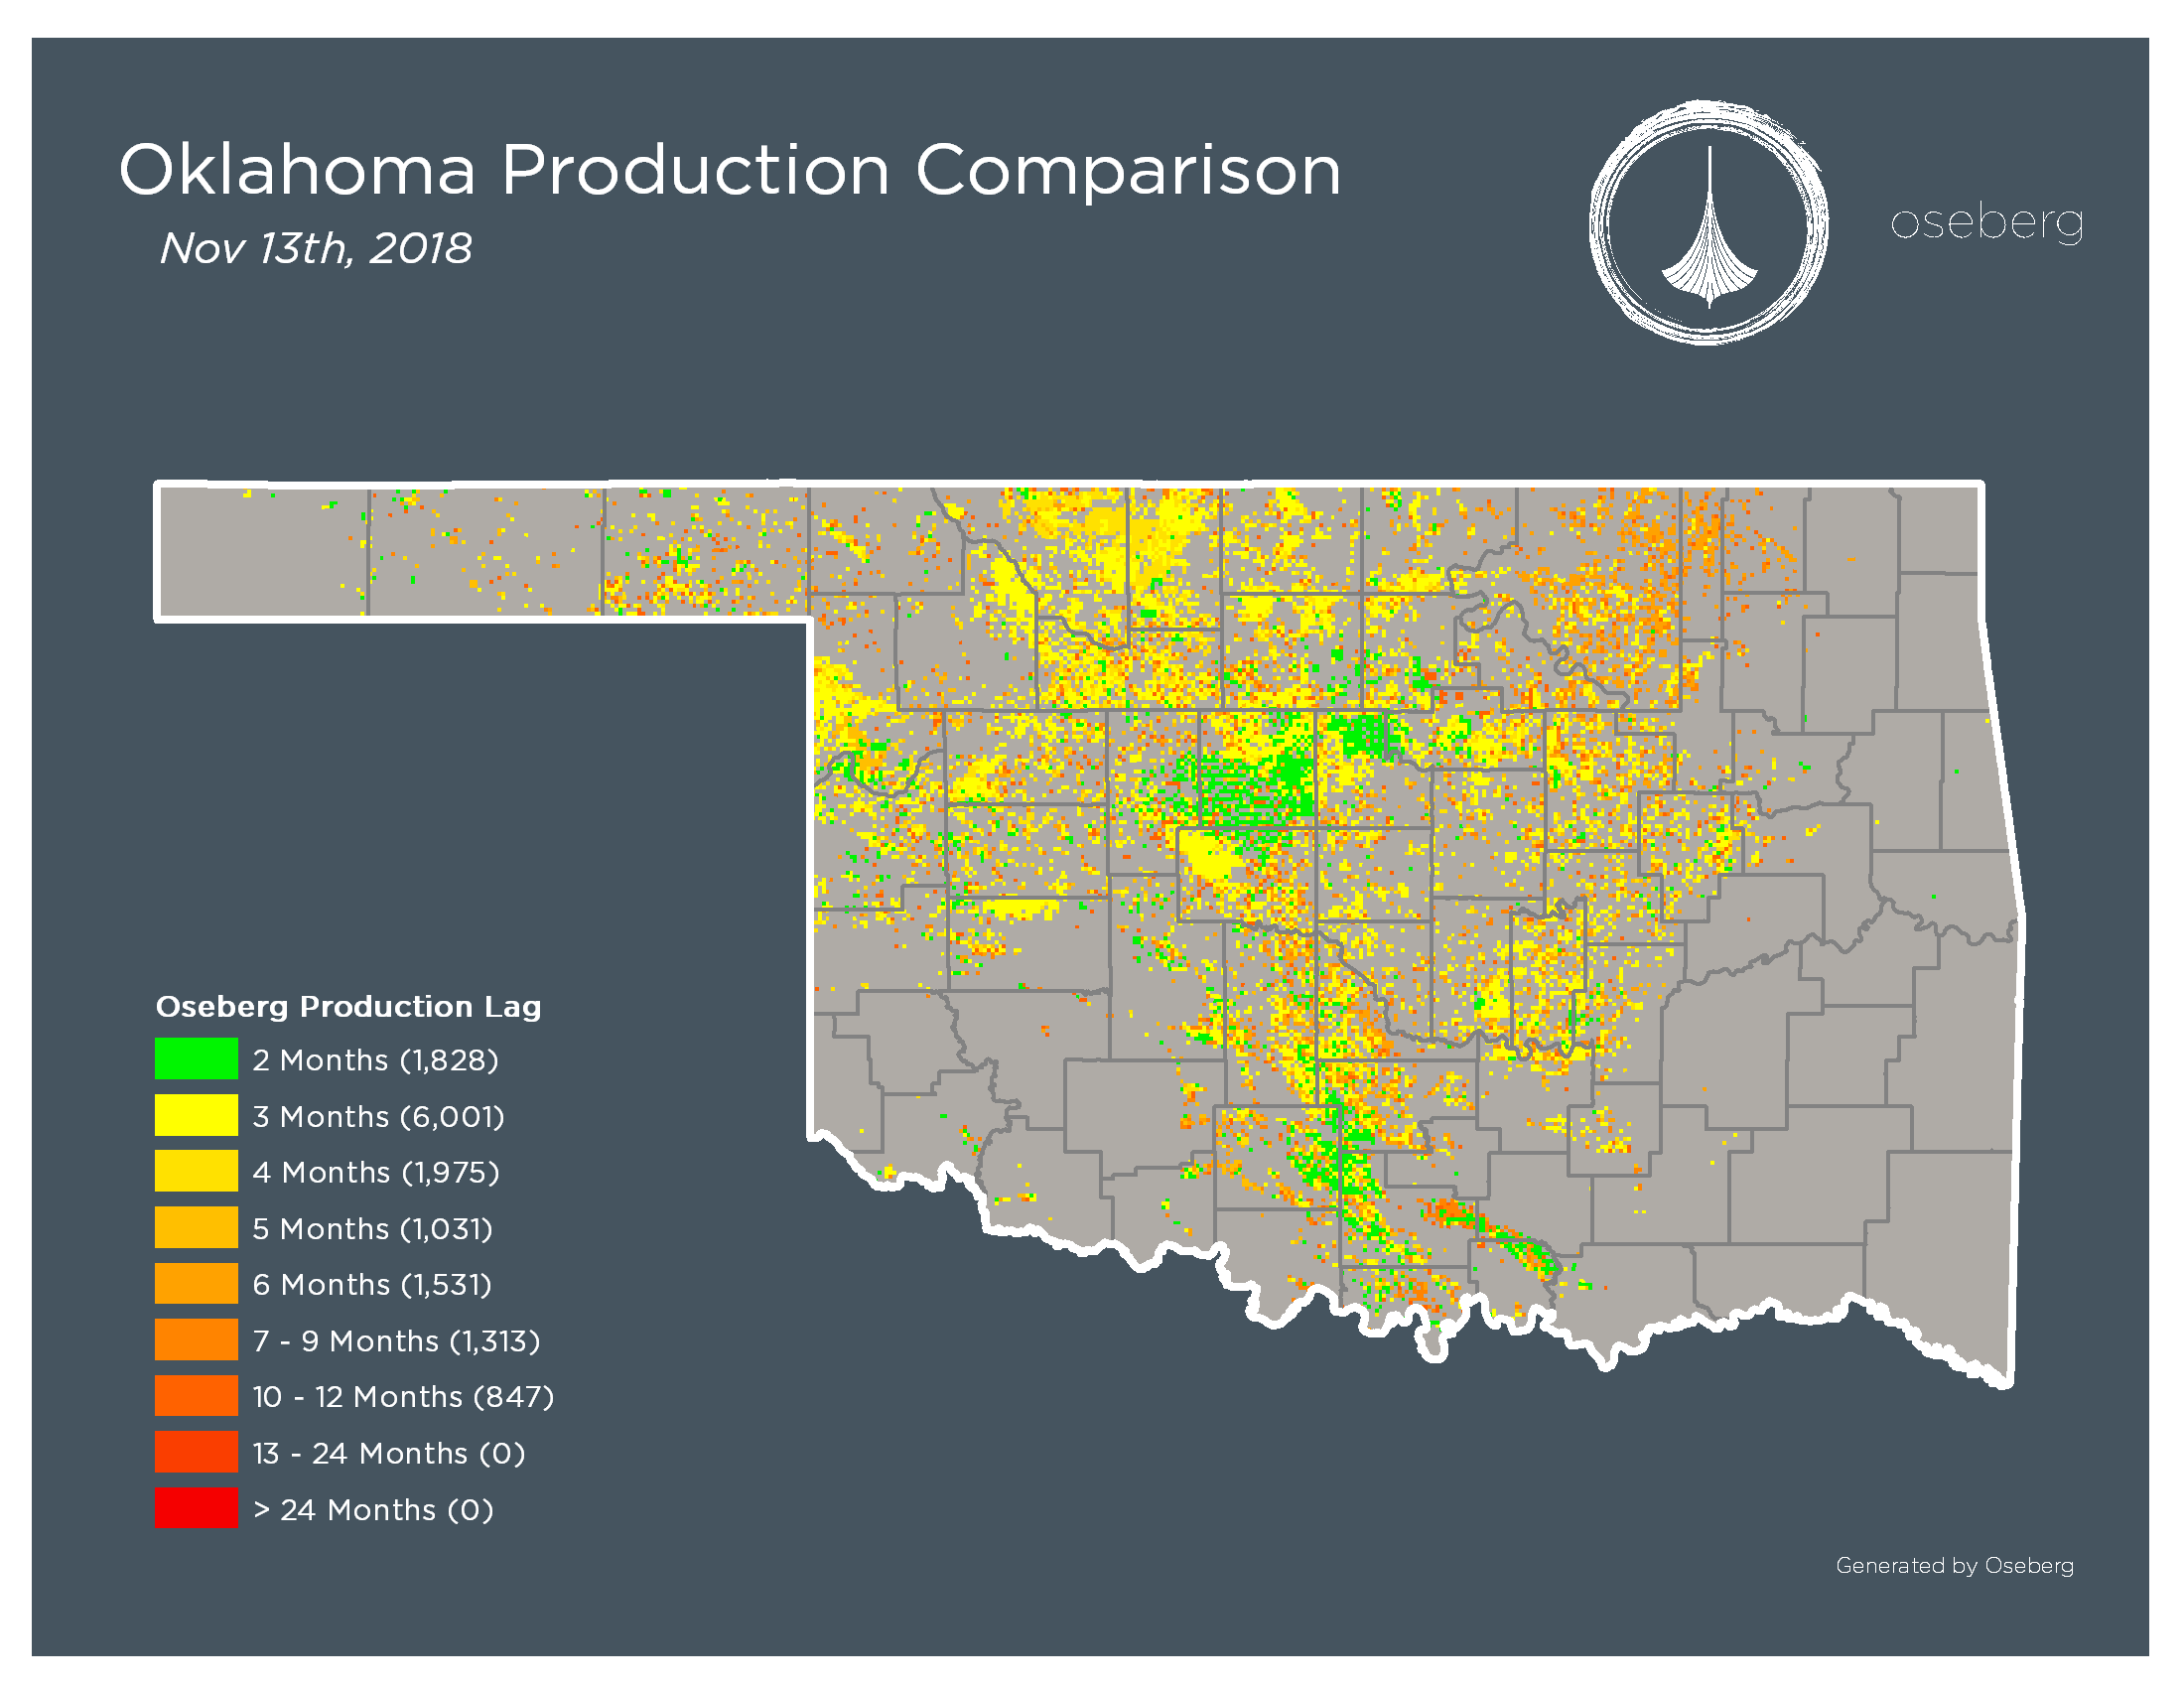 Press Release: Oklahoma Production Dataset Acquired by Oseberg Offers Early Insight Into Well Performance - Critical for Shale Evaluation